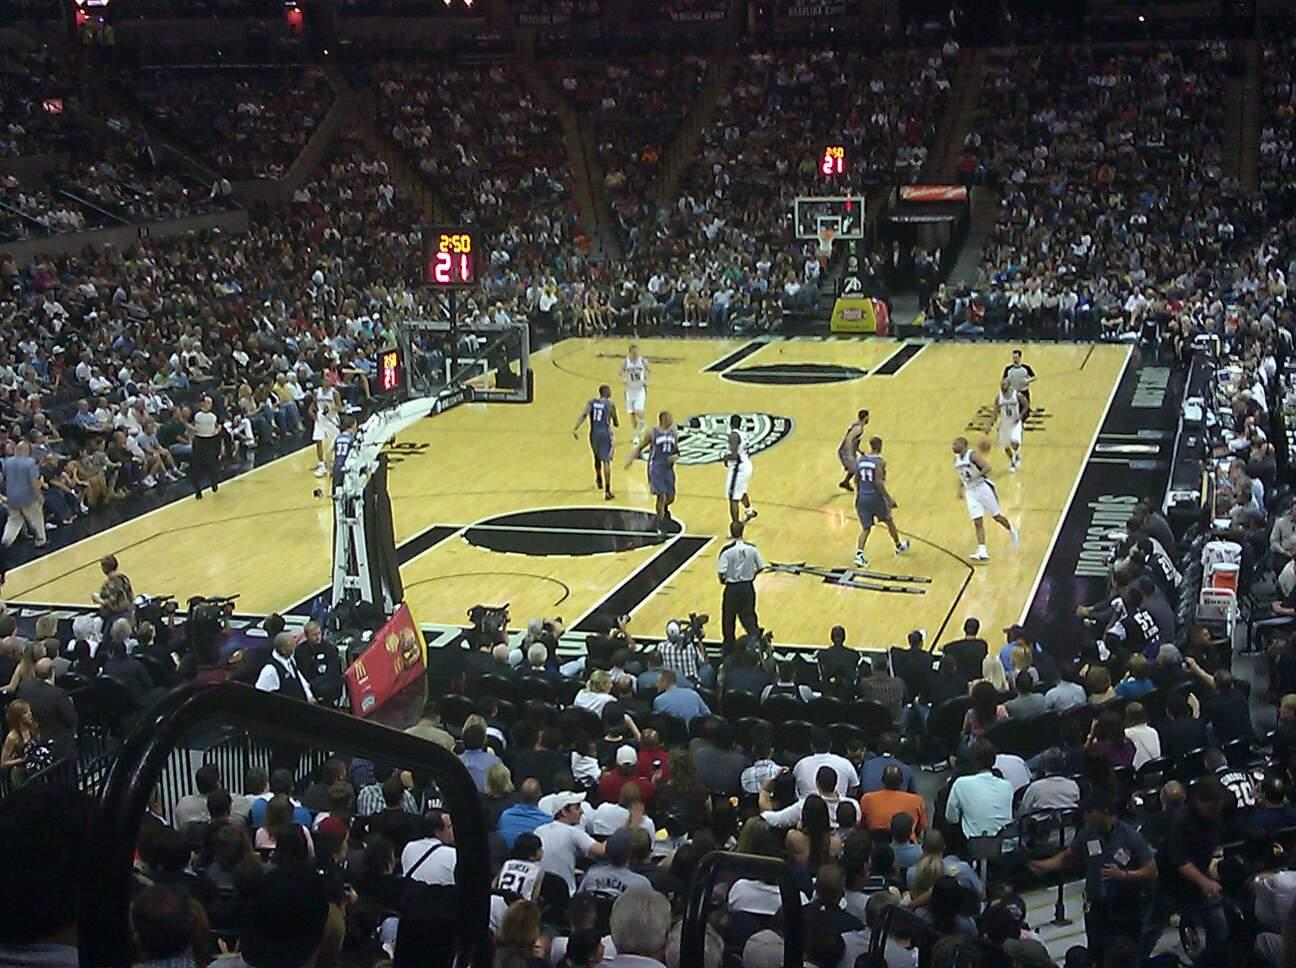 AT&T Center Section 113 Row 24 Seat 8